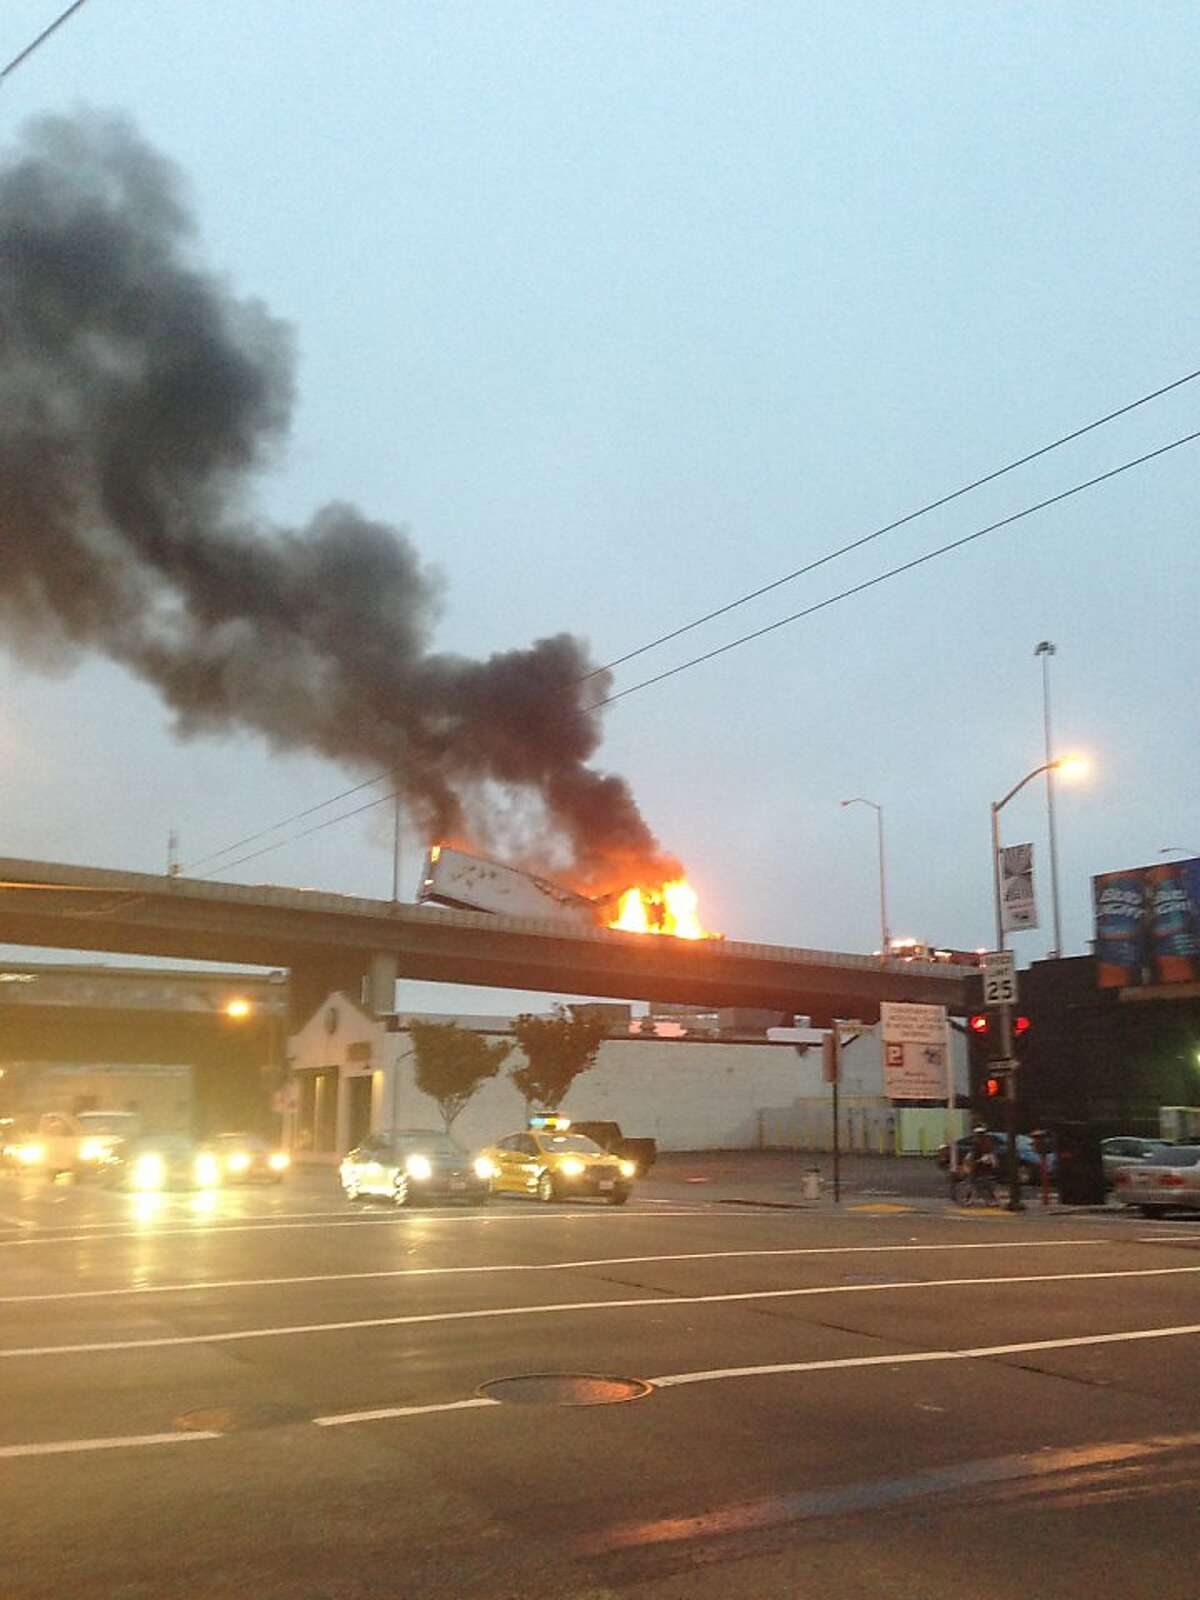 A photo of the burning big-rig truck on Interstate 80 in San Francisco on the morning of Monday, August 5, 2013. The fire closed two lanes for hours and caused a massive delay on the Bay Bridge.